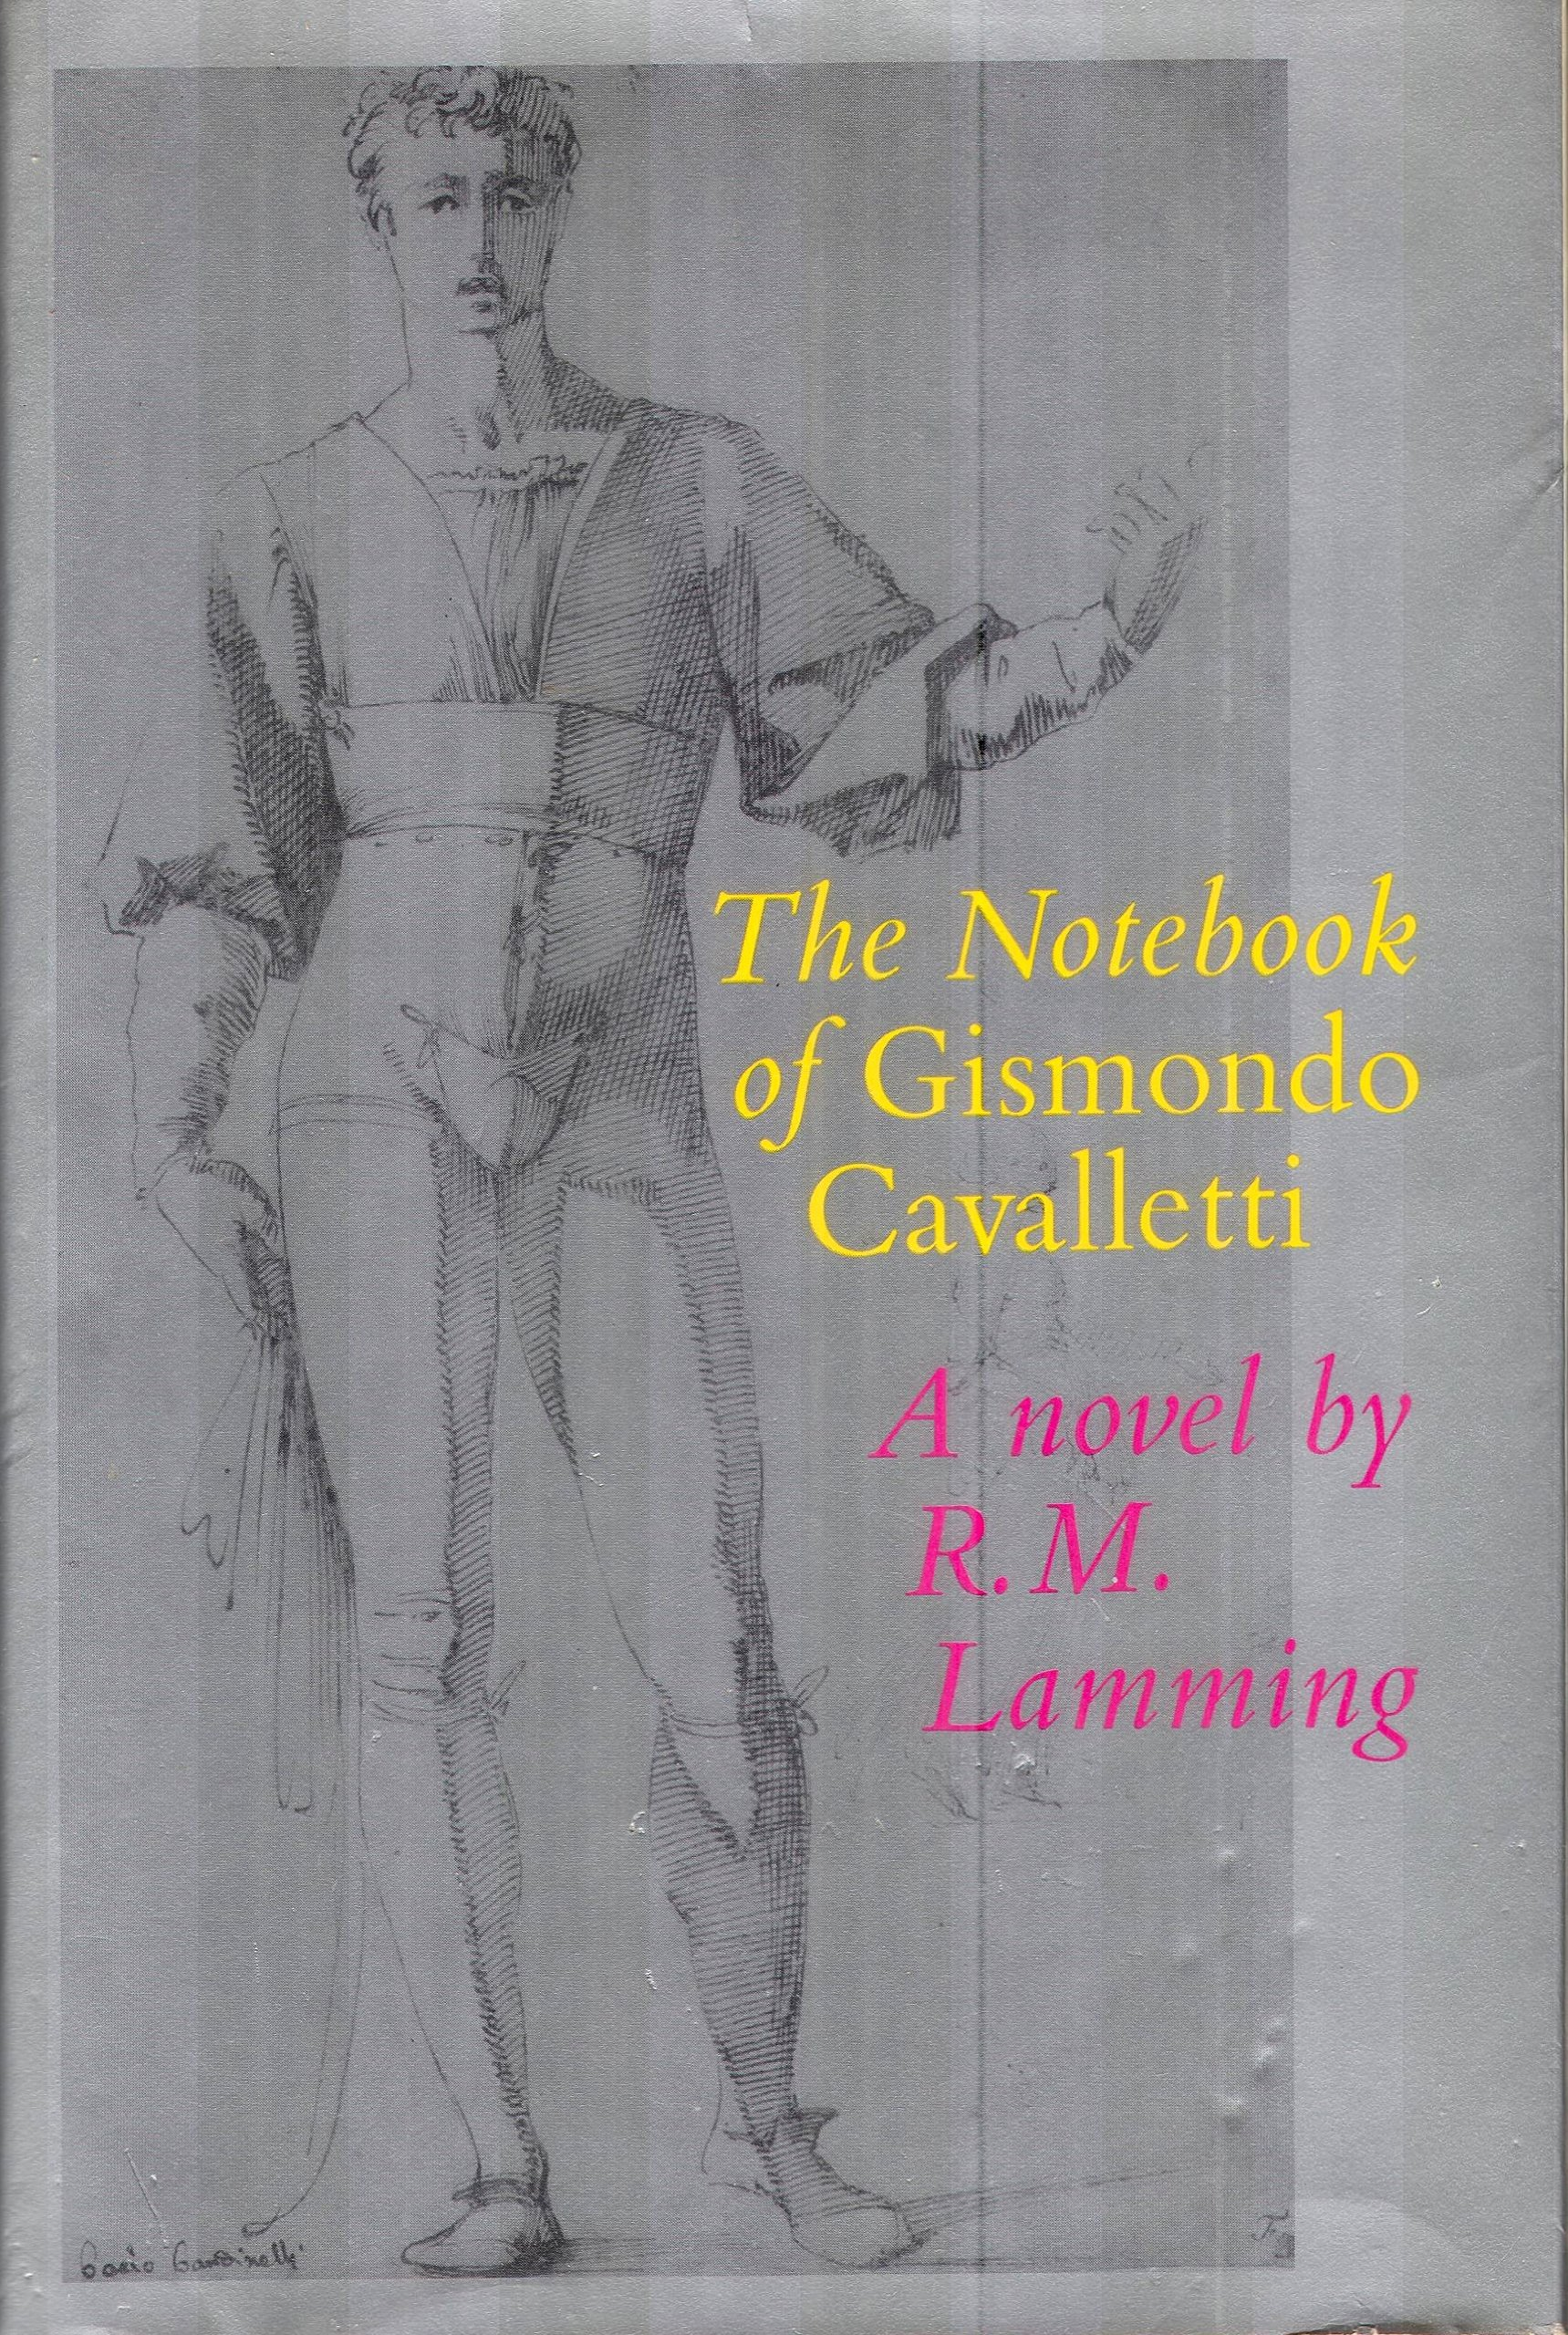 The Notebook of Gismondo Cavalletti, Lamming, R.M.